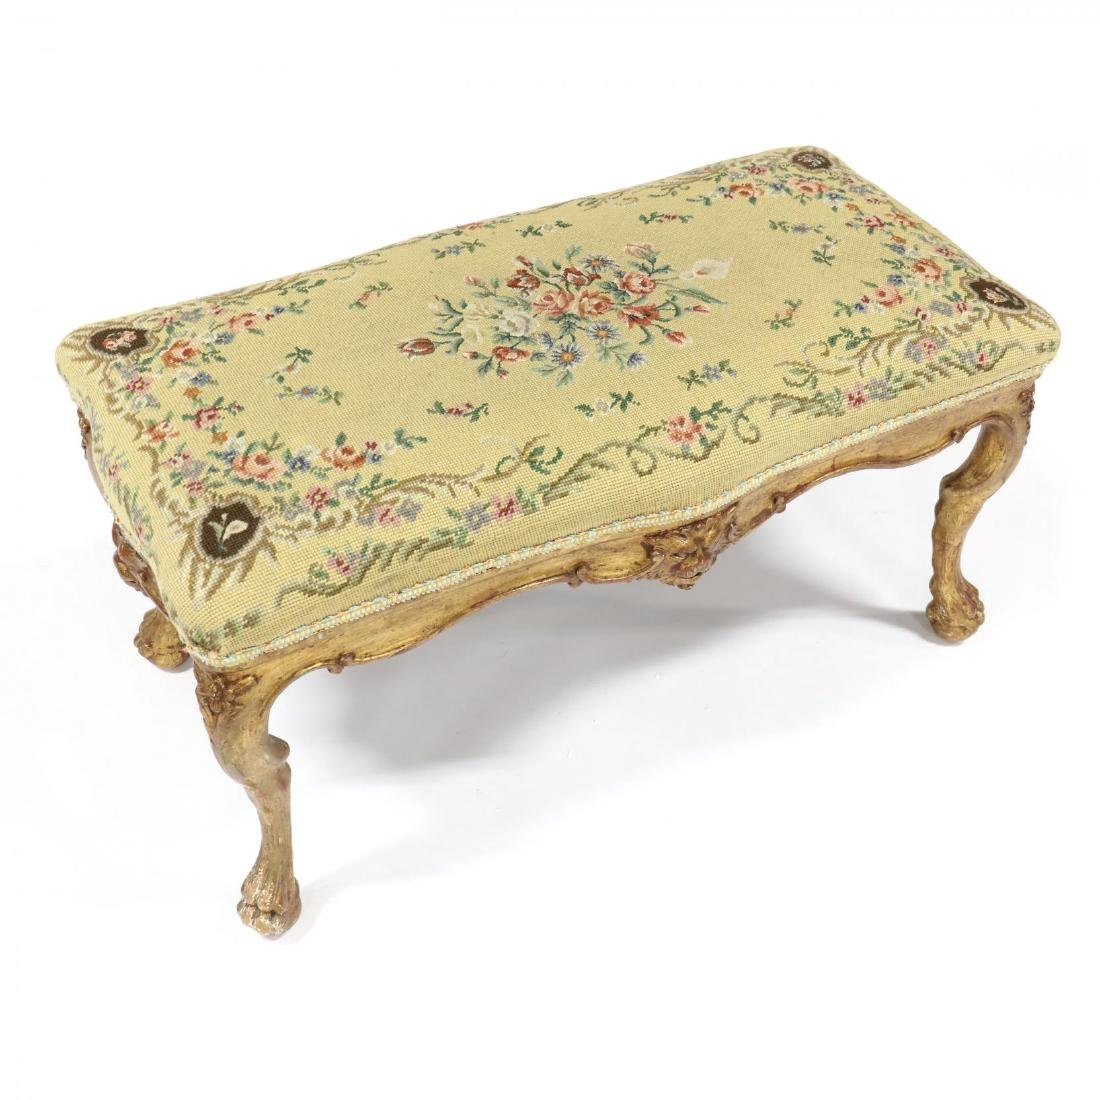 Continental Carved and Gilt Needlepoint Bench - 2